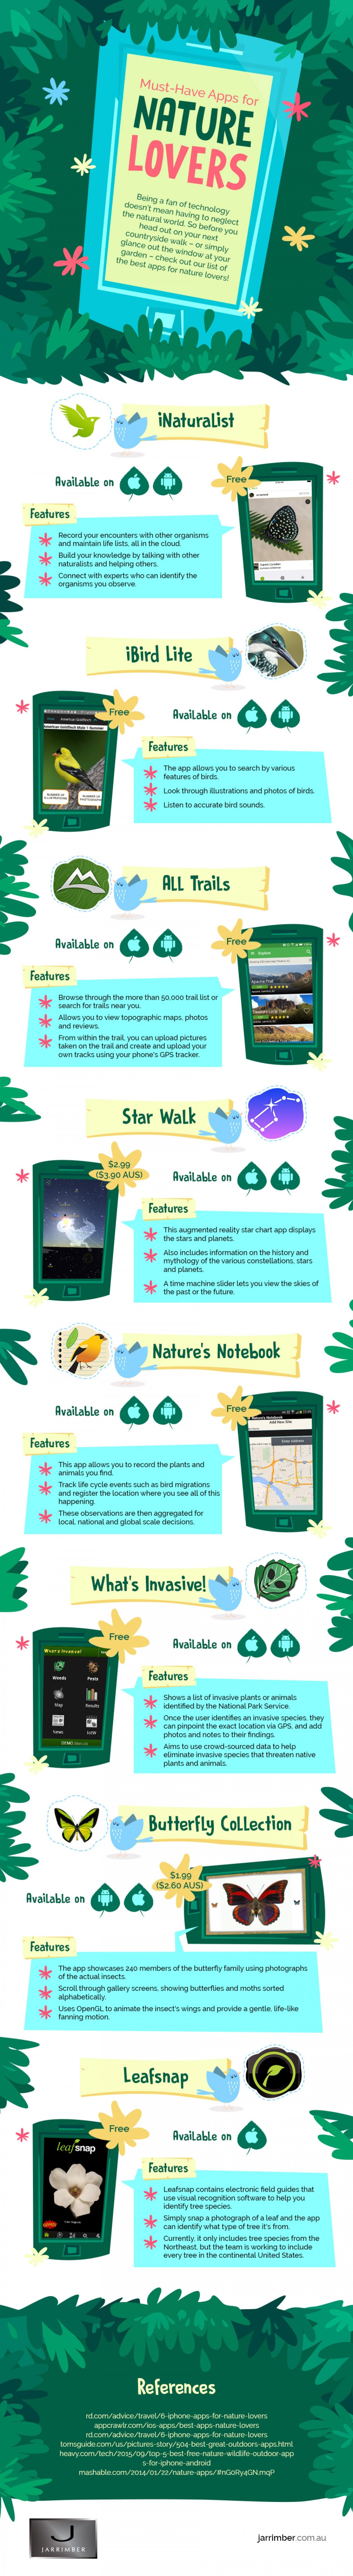 Must-Have Apps for Nature Lovers [Infographic]   ecogreenlove